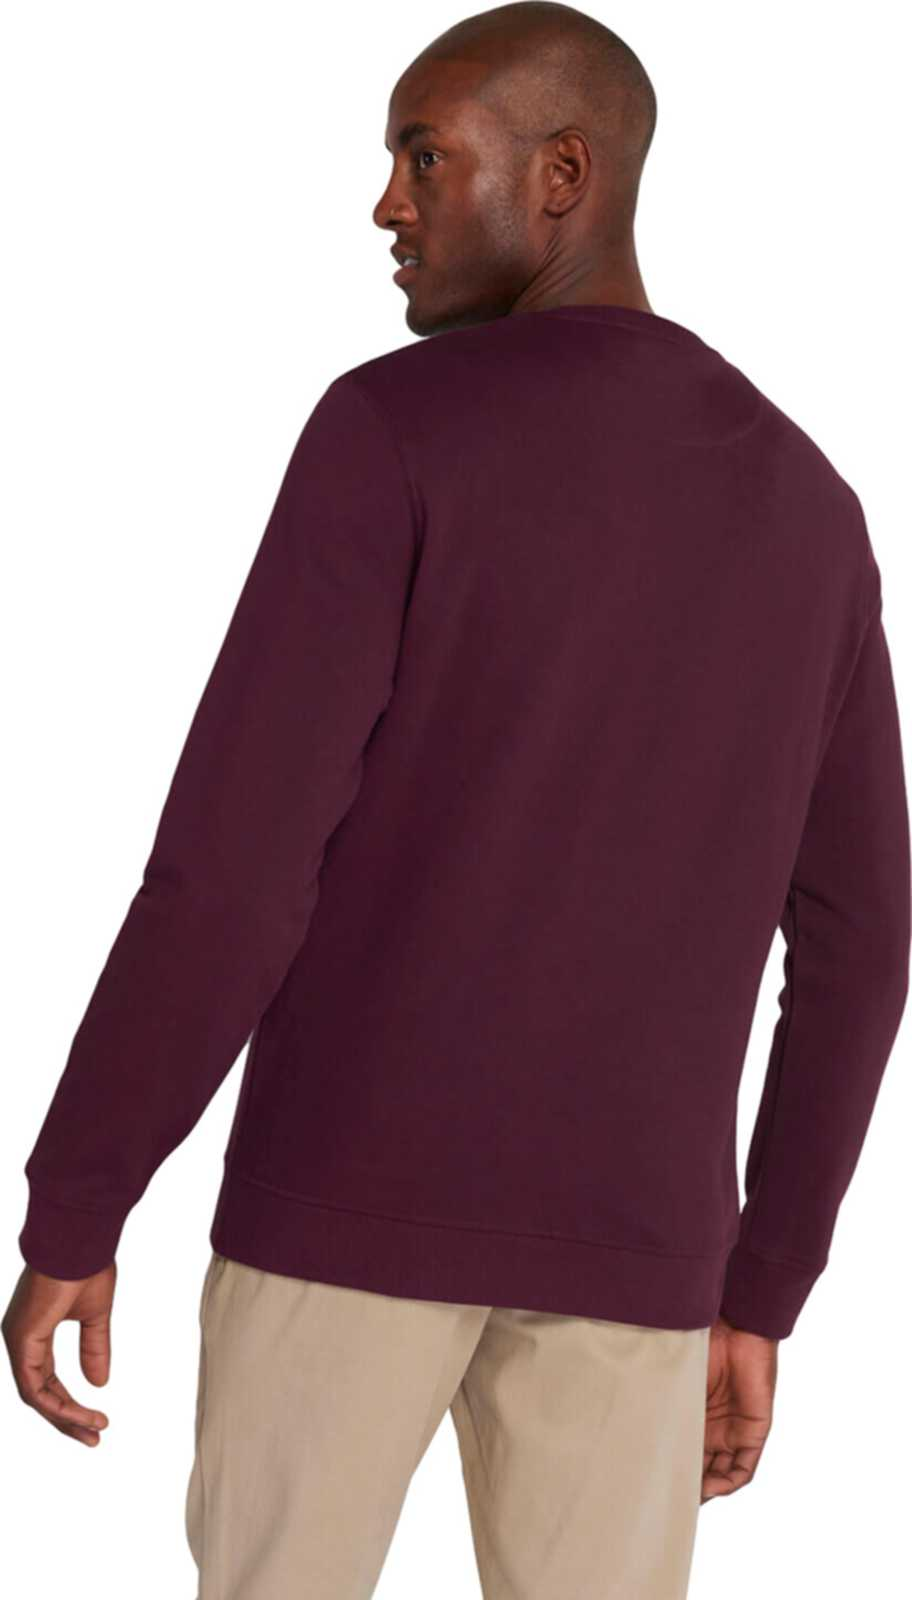 Lyle & Scott Sweatshirt Burgundy